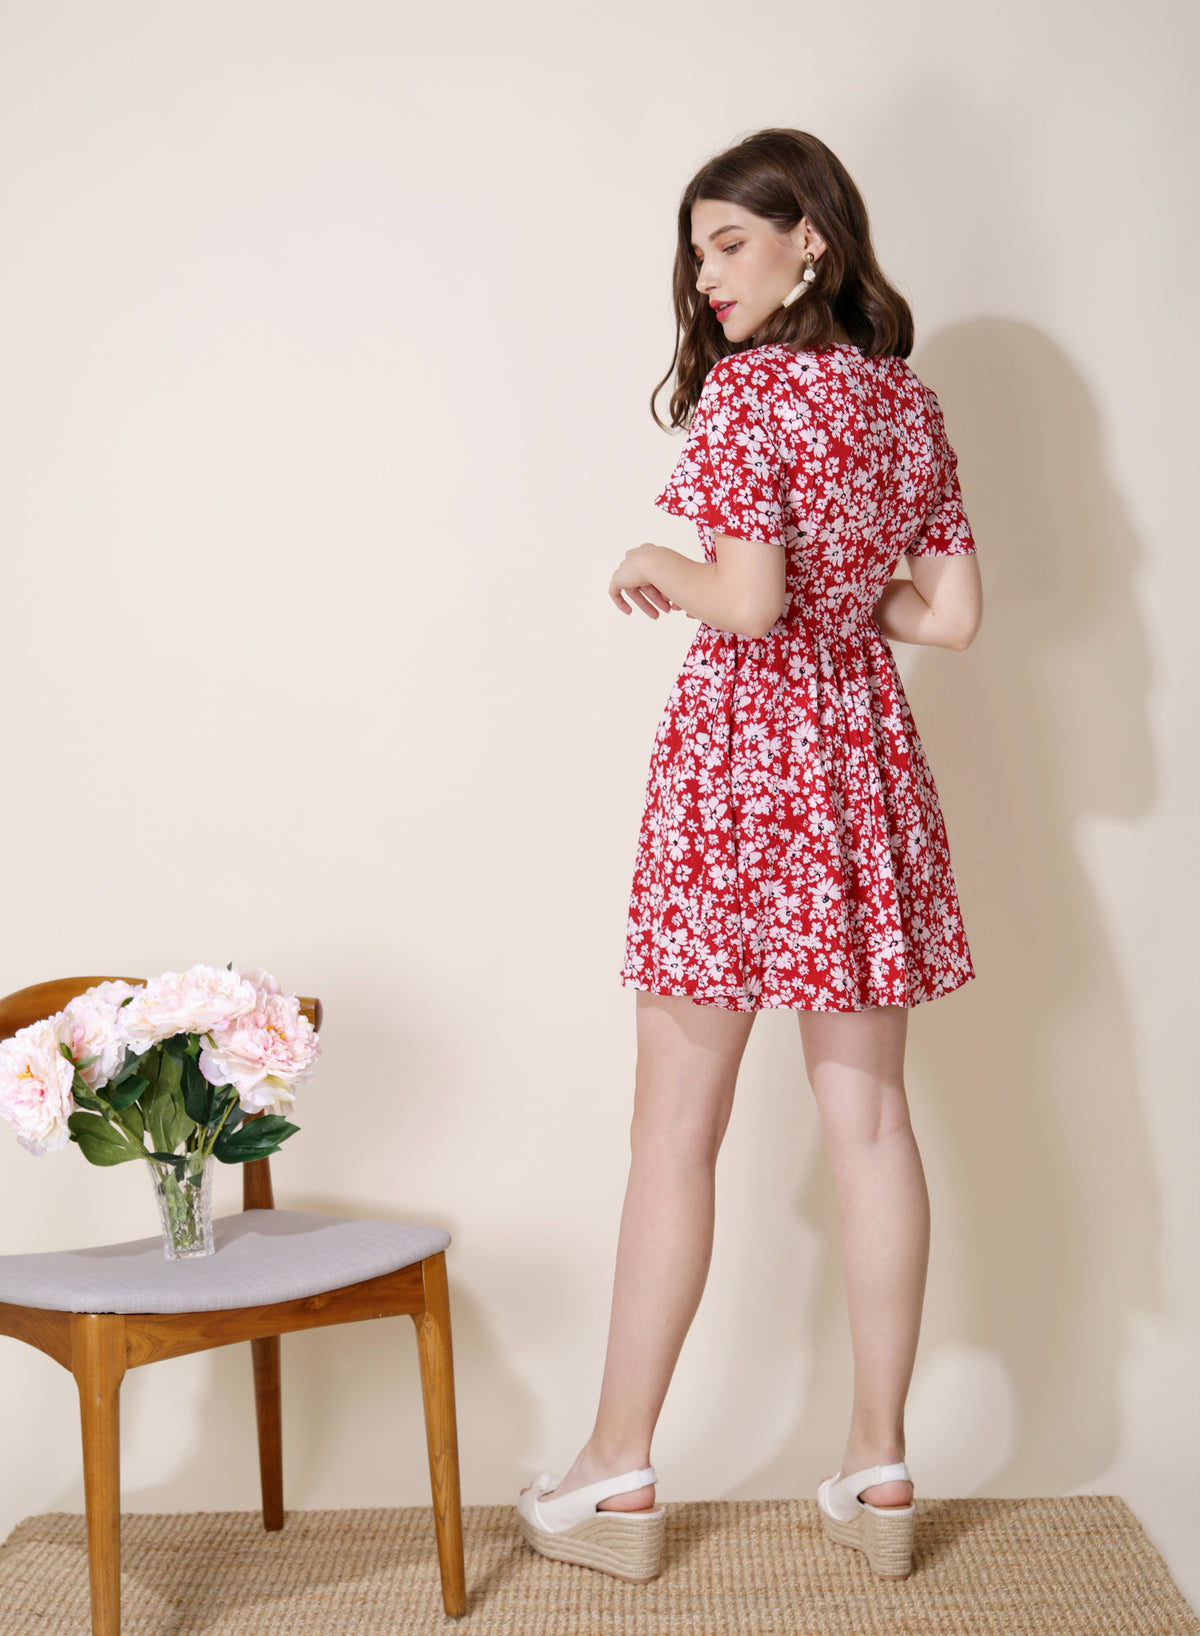 Riviera Button Front Floral Dress (Red) at $ 43.50 only sold at And Well Dressed Online Fashion Store Singapore